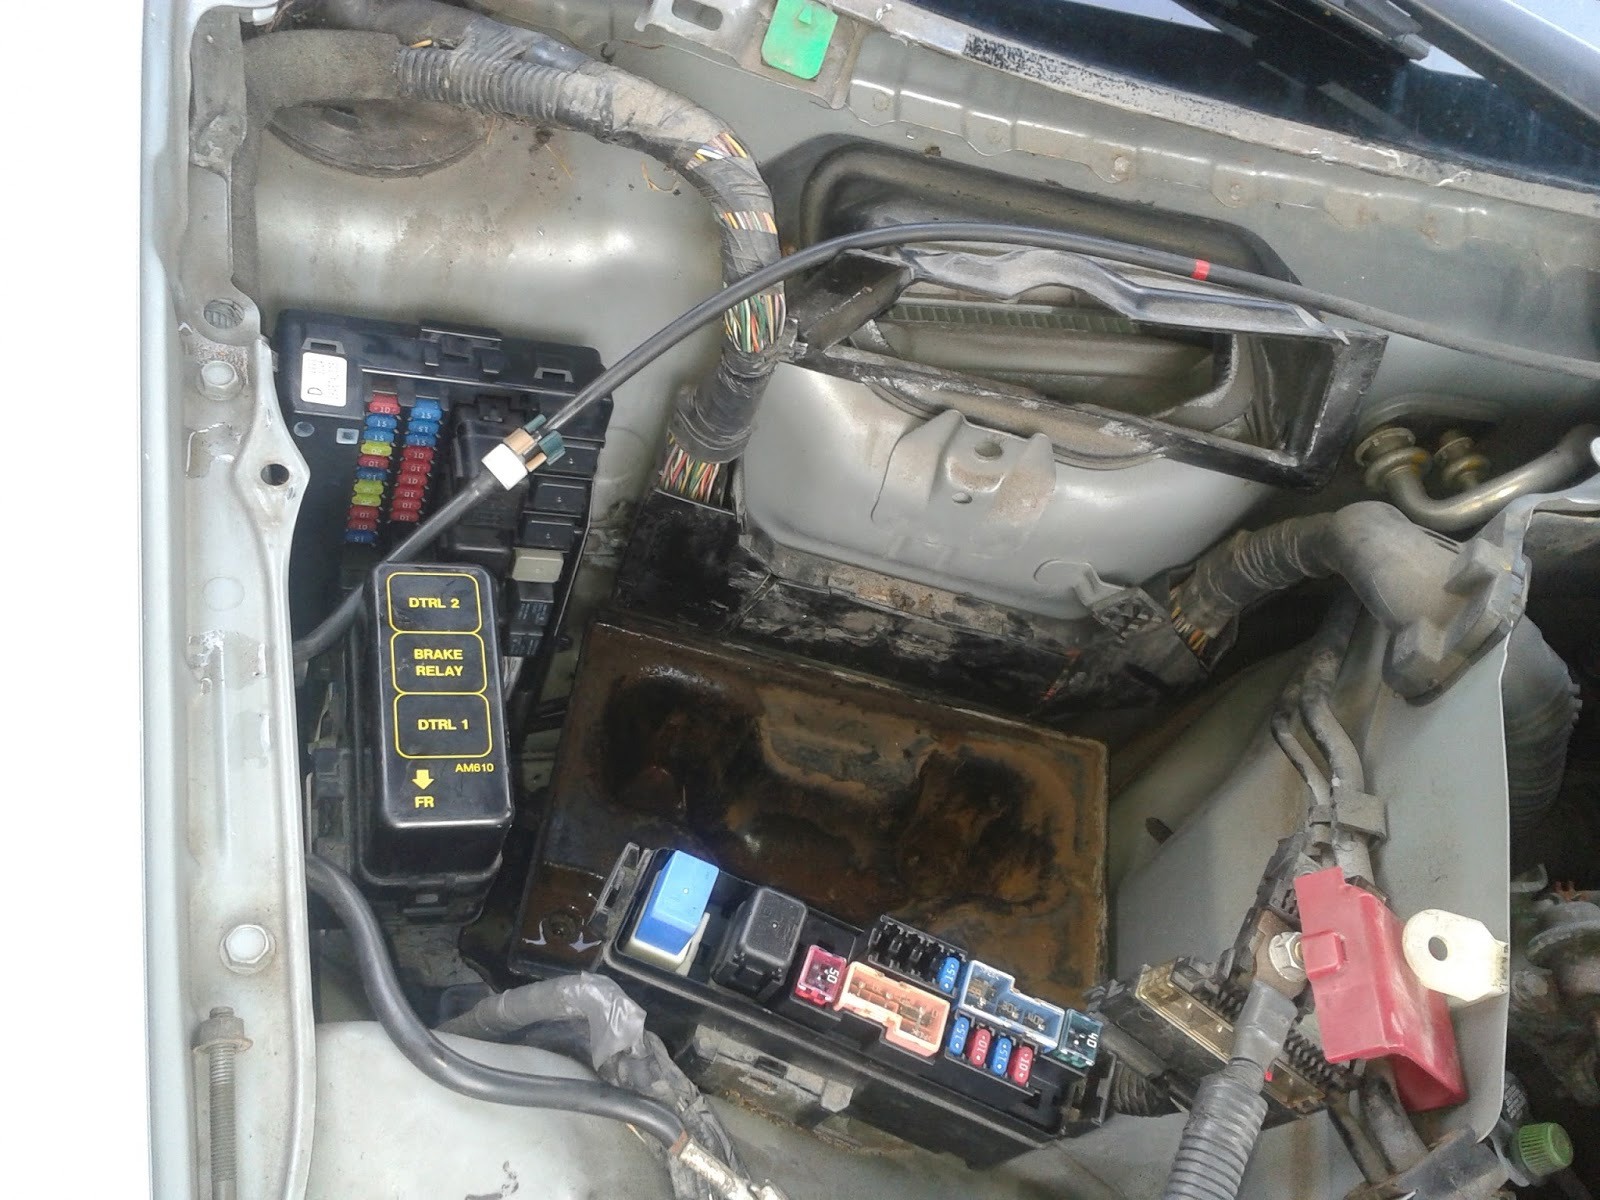 2015 05 27%2B18.55.50 zf inifiniti g35 2003 wet ipdm issue, how to fix it 2005 infiniti g35 fuse box location at reclaimingppi.co